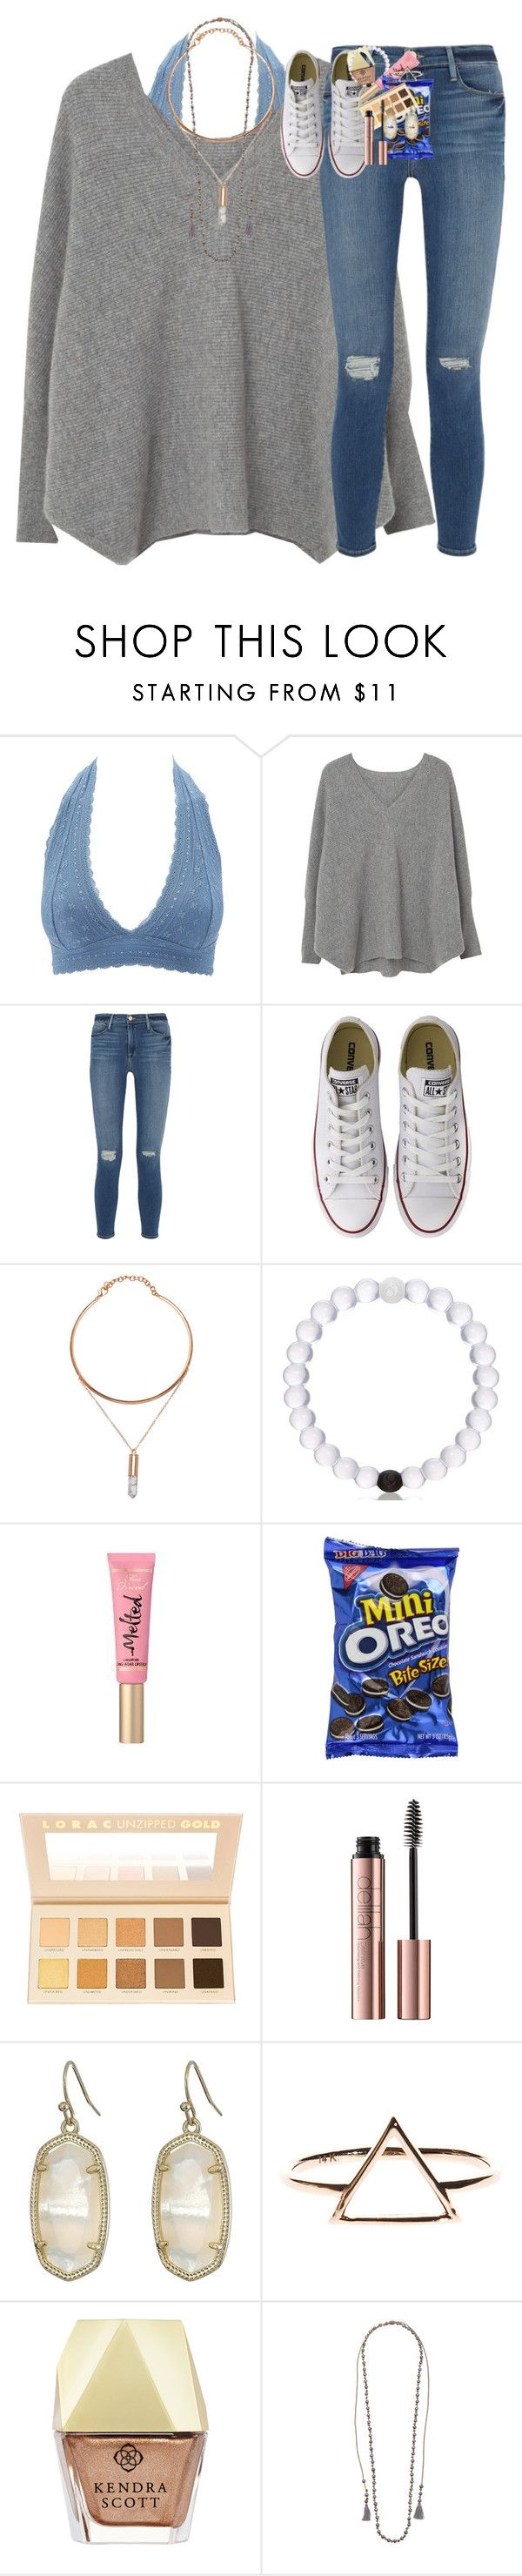 """""""food tag in description!!1!11"""" by classynsouthern ❤ liked on Polyvore featuring Charlotte Russe, MANGO, Frame, Converse, Too Faced Cosmetics, LORAC, Kendra Scott, Chan Luu and country"""